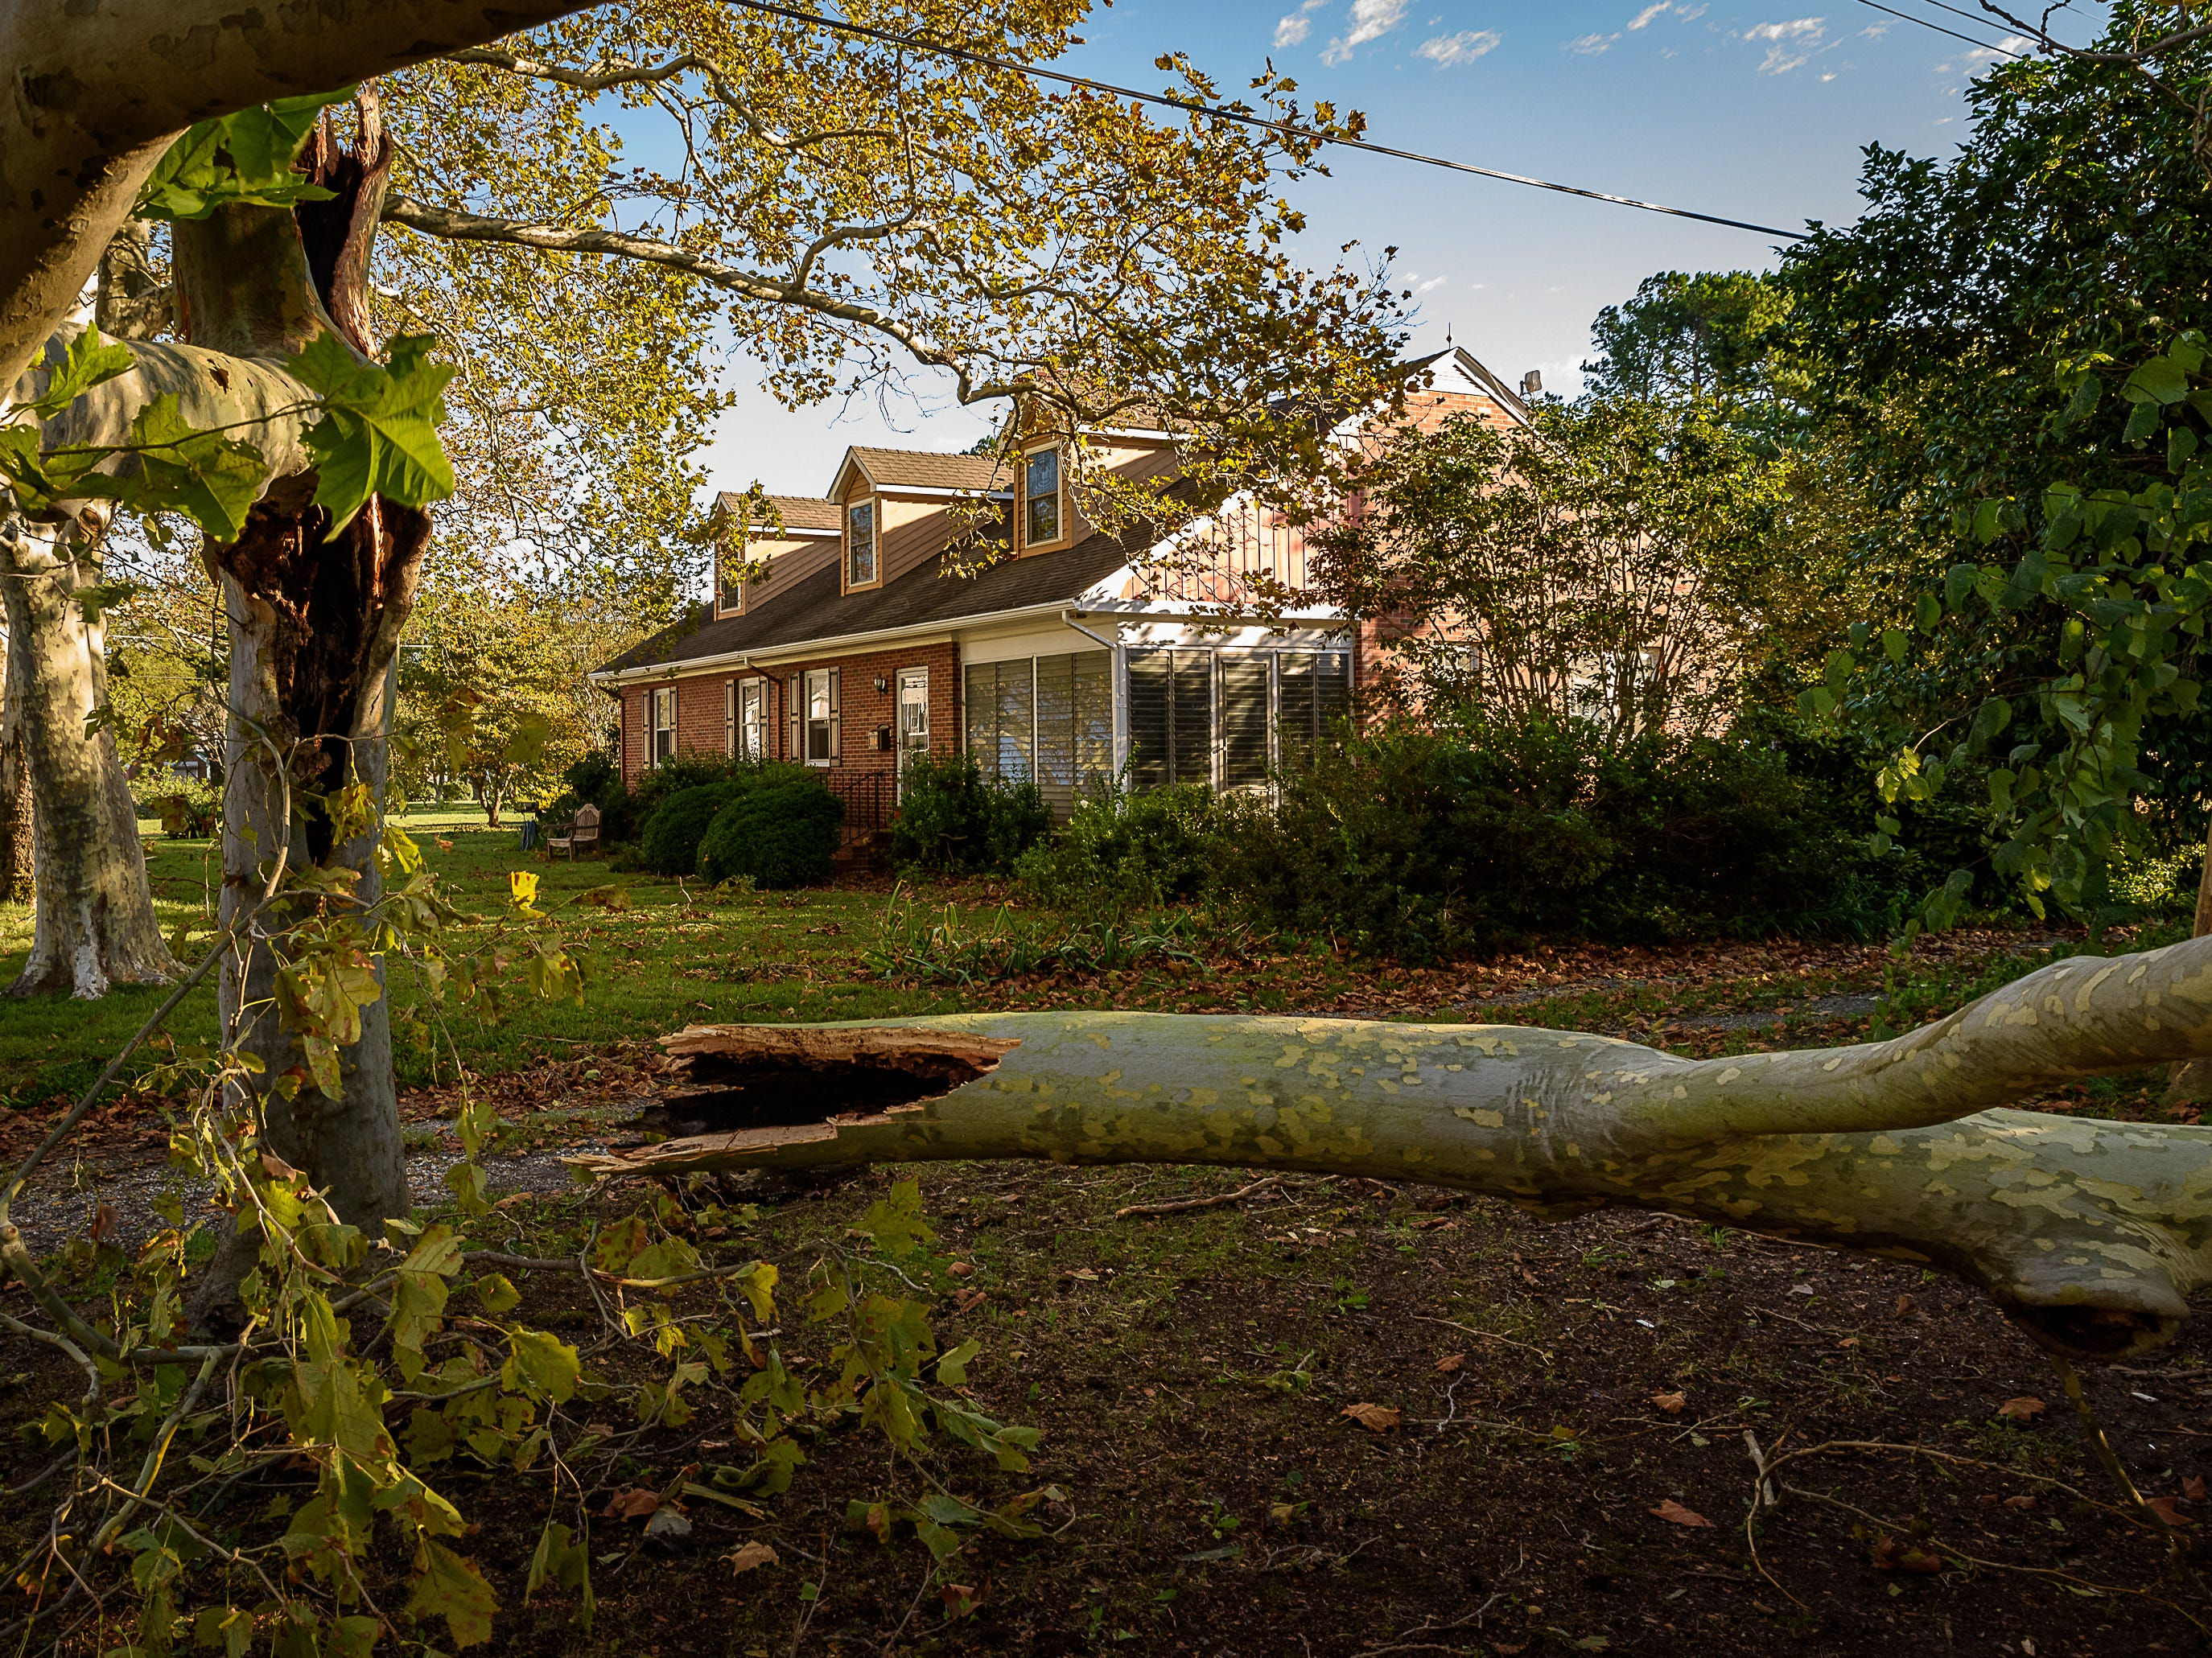 Several large trees came down during the storm that swept through Cape Charles, Virginia overnight into Oct. 12, 2018.